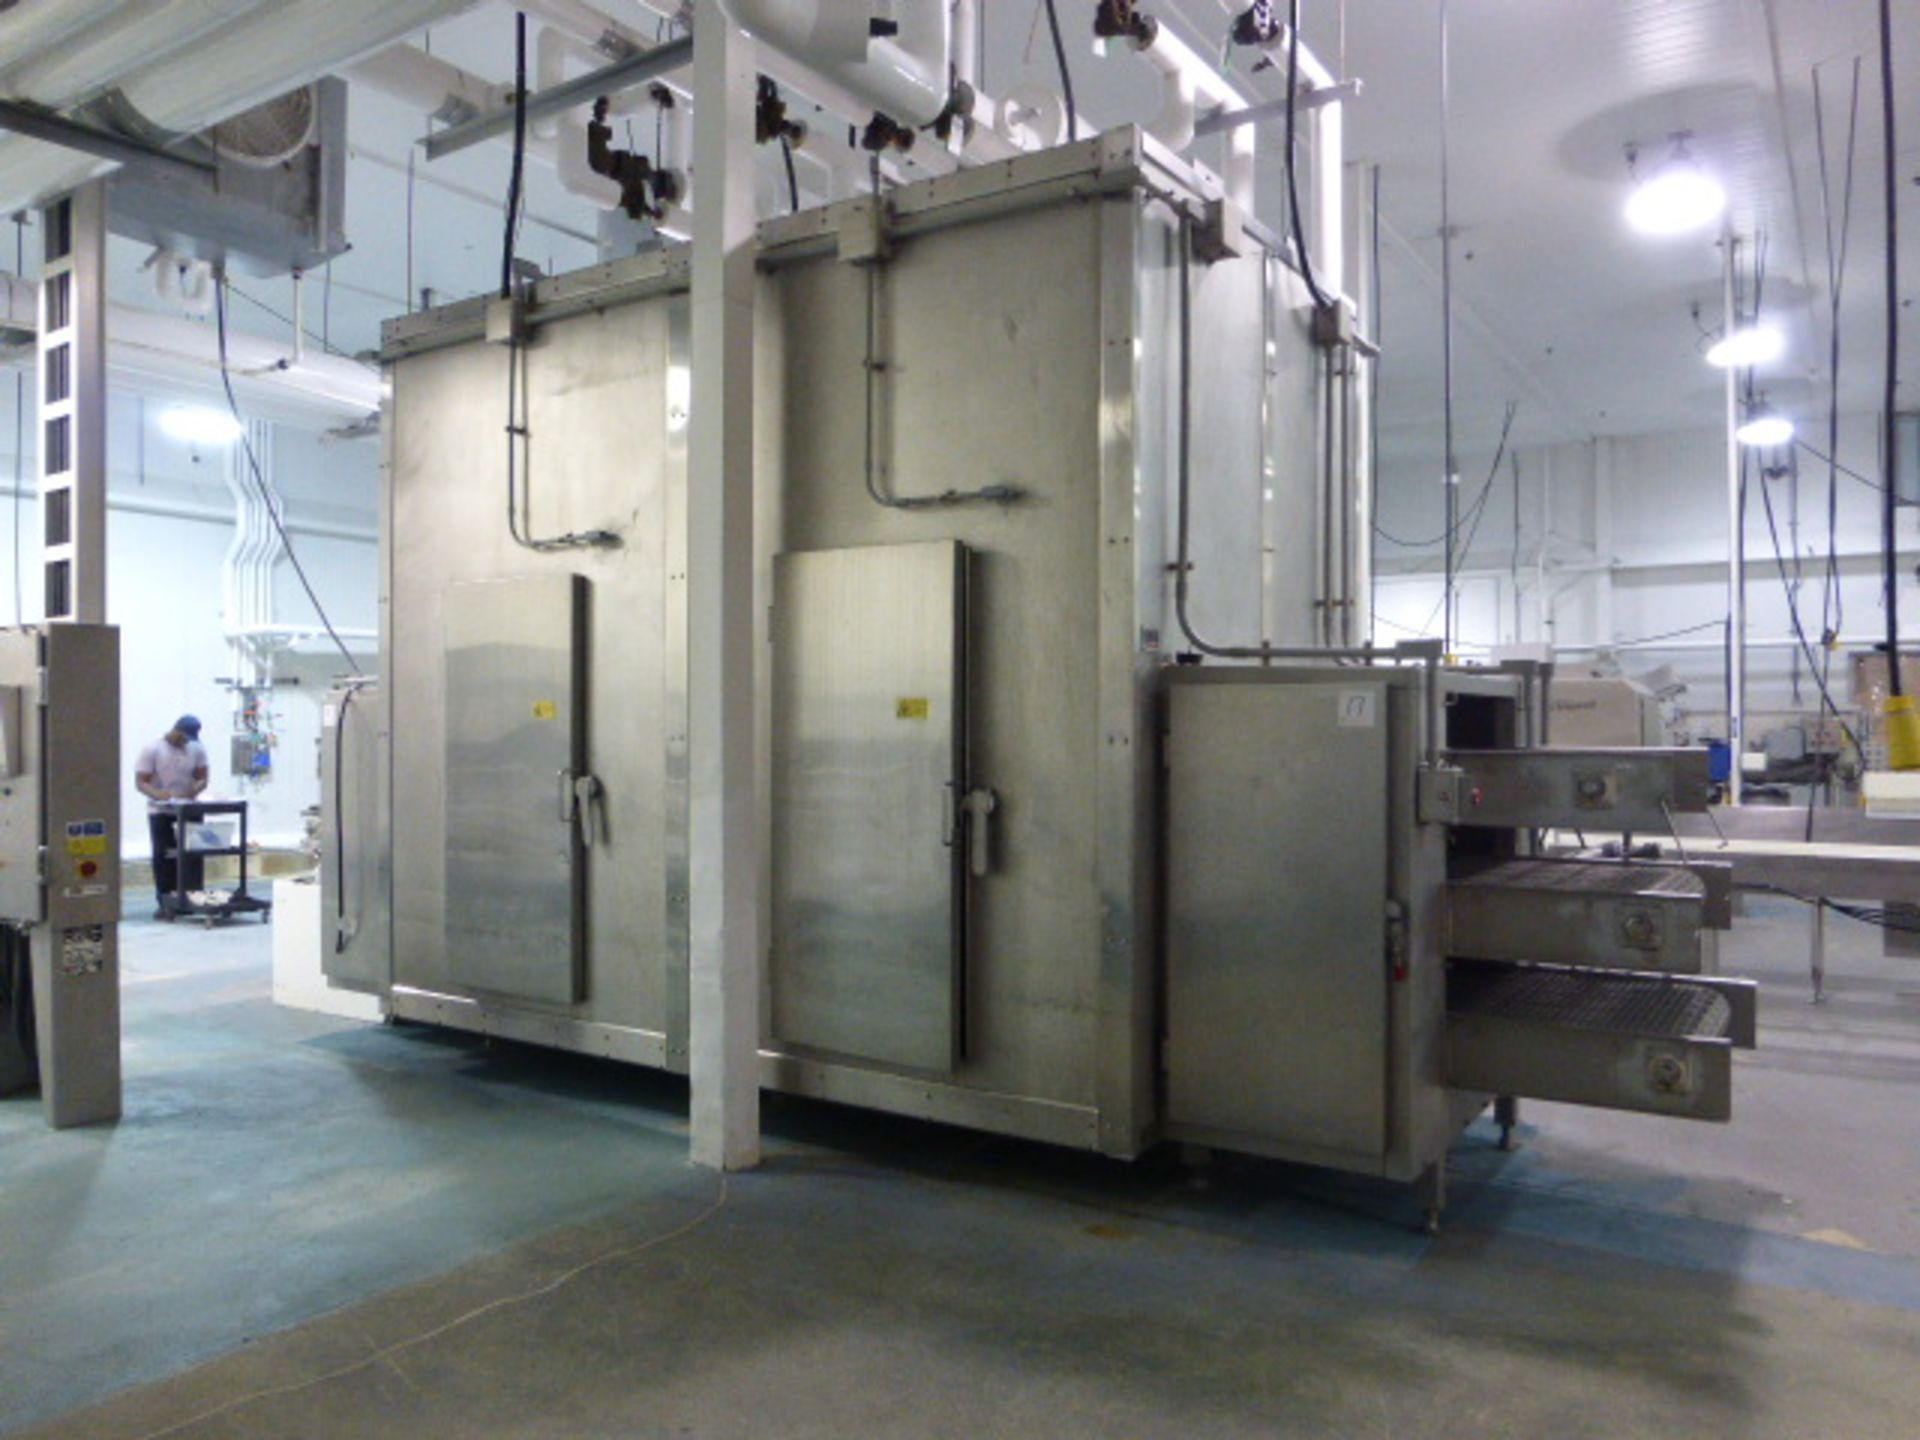 Lot 17 - Ross boundary layer control tunnel freezer/chiller, model BLC-II, ammonia, independent tunnel